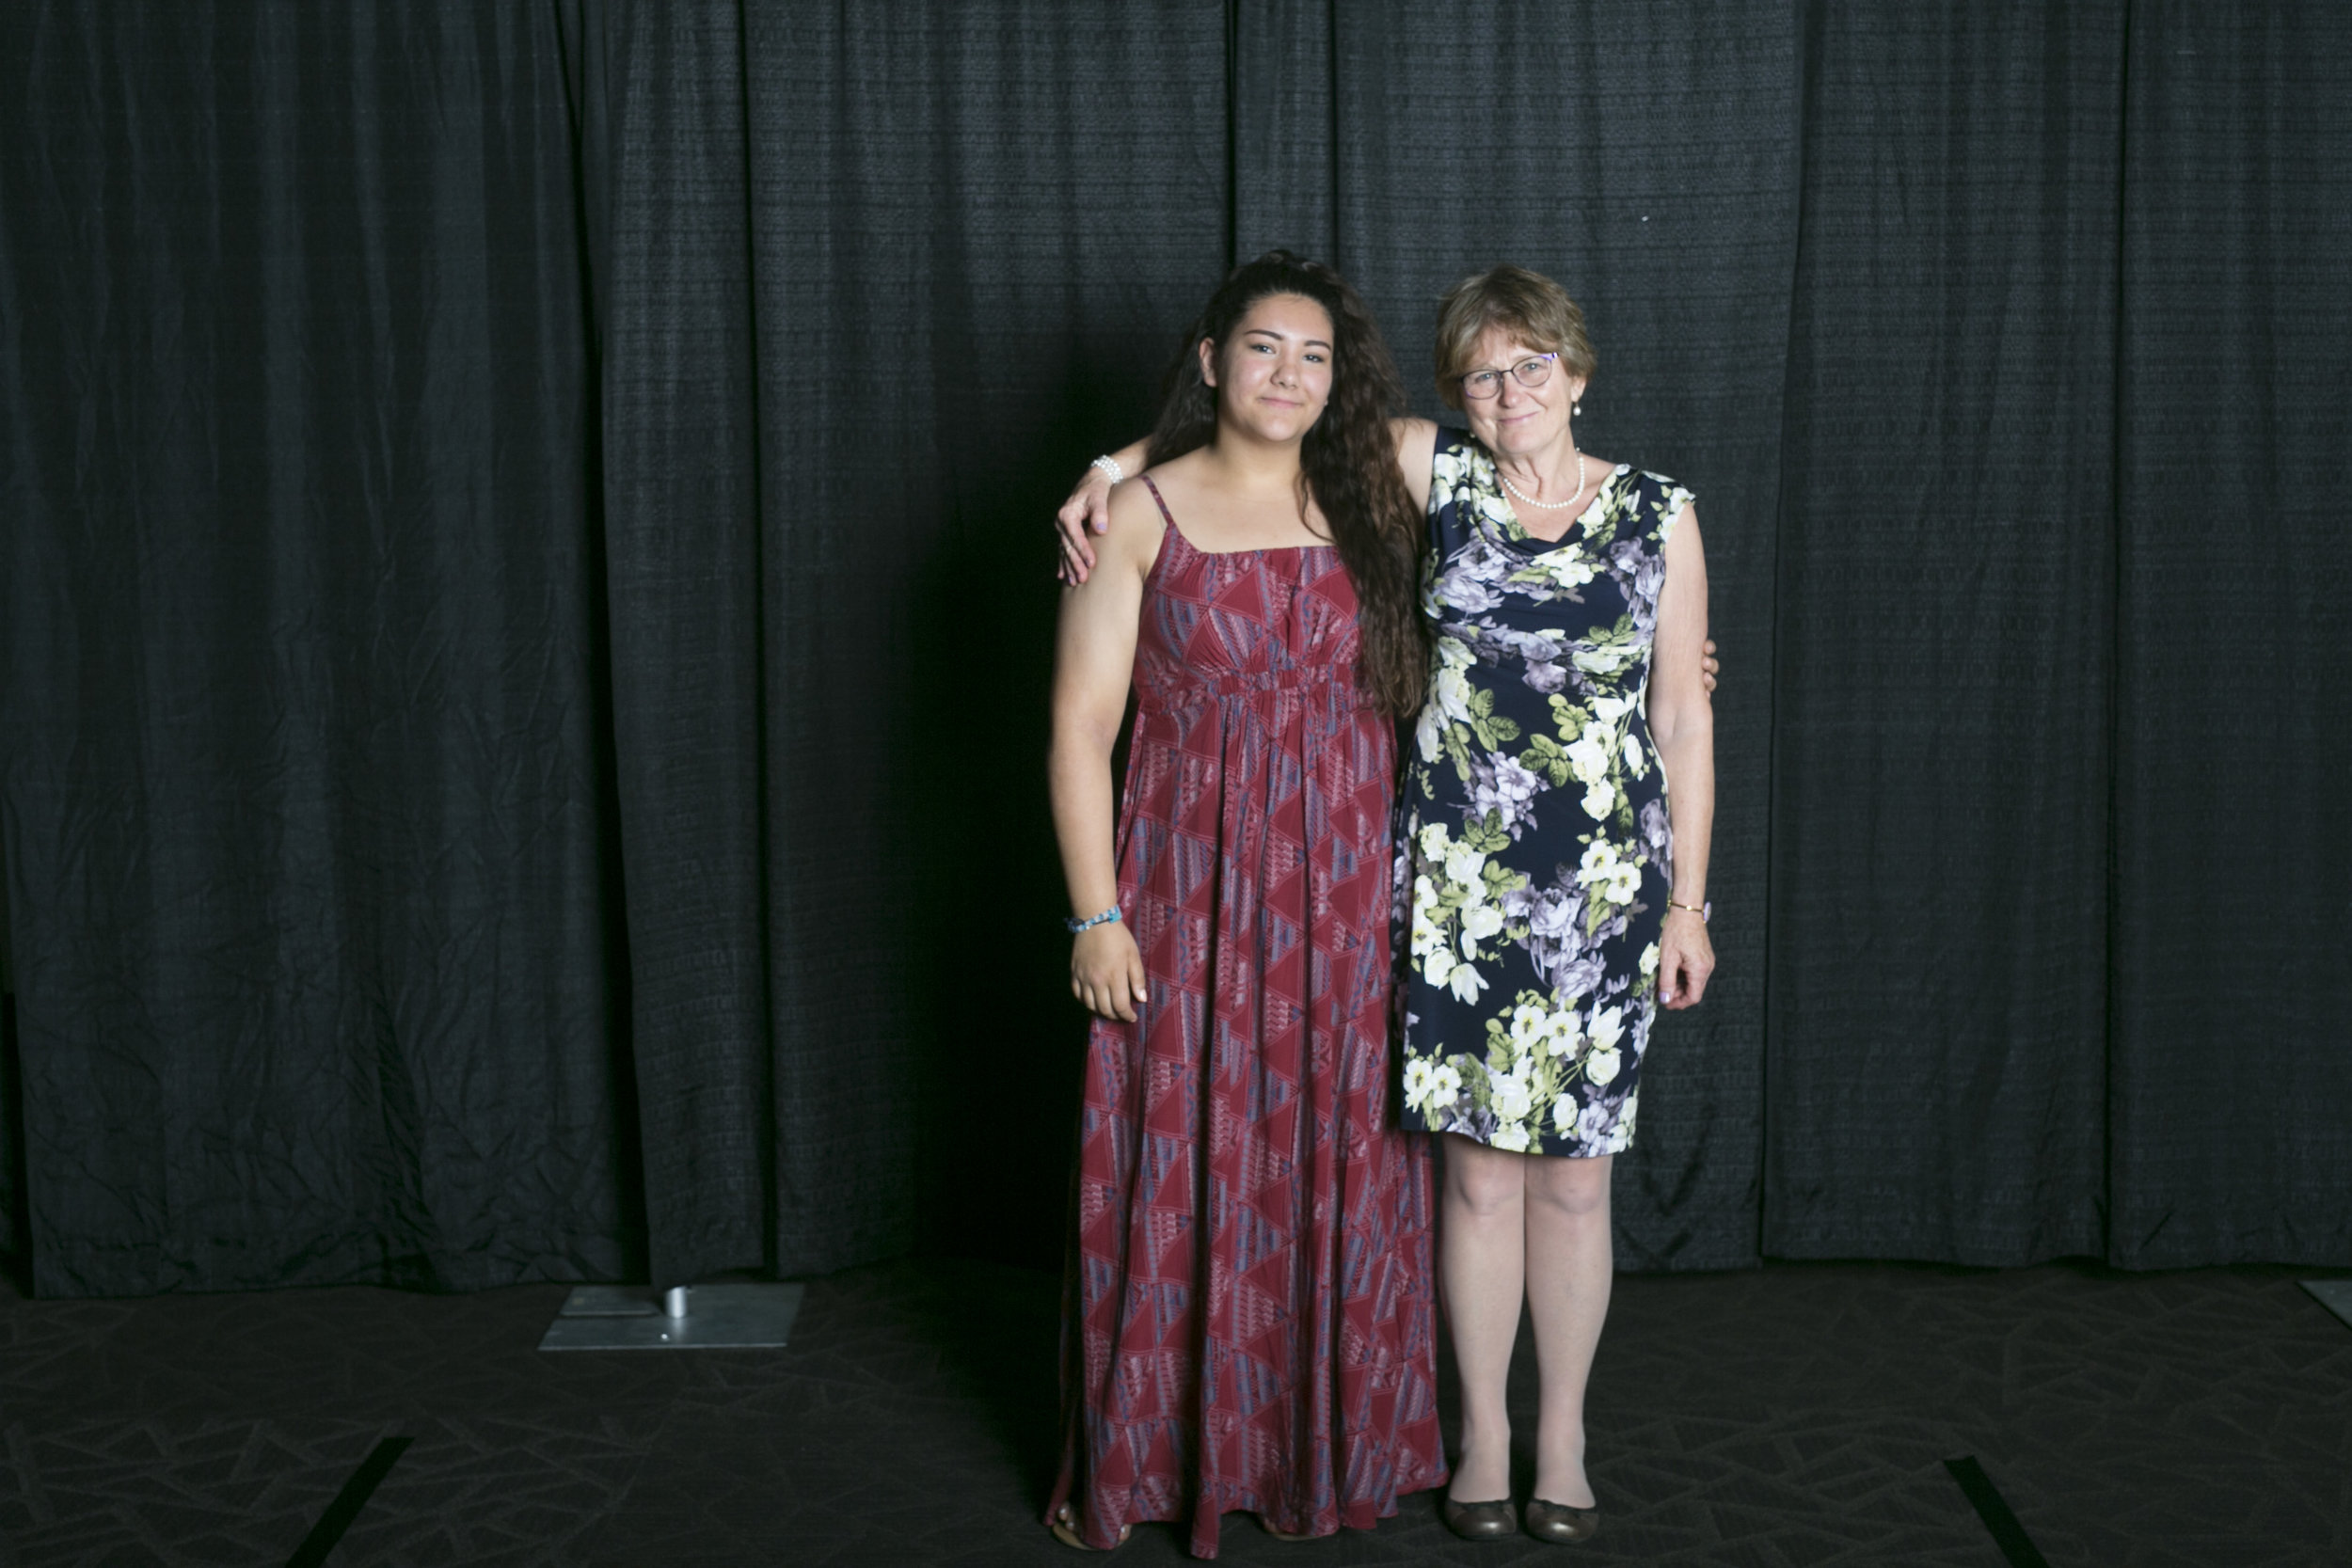 wedding photo booth-46.jpg